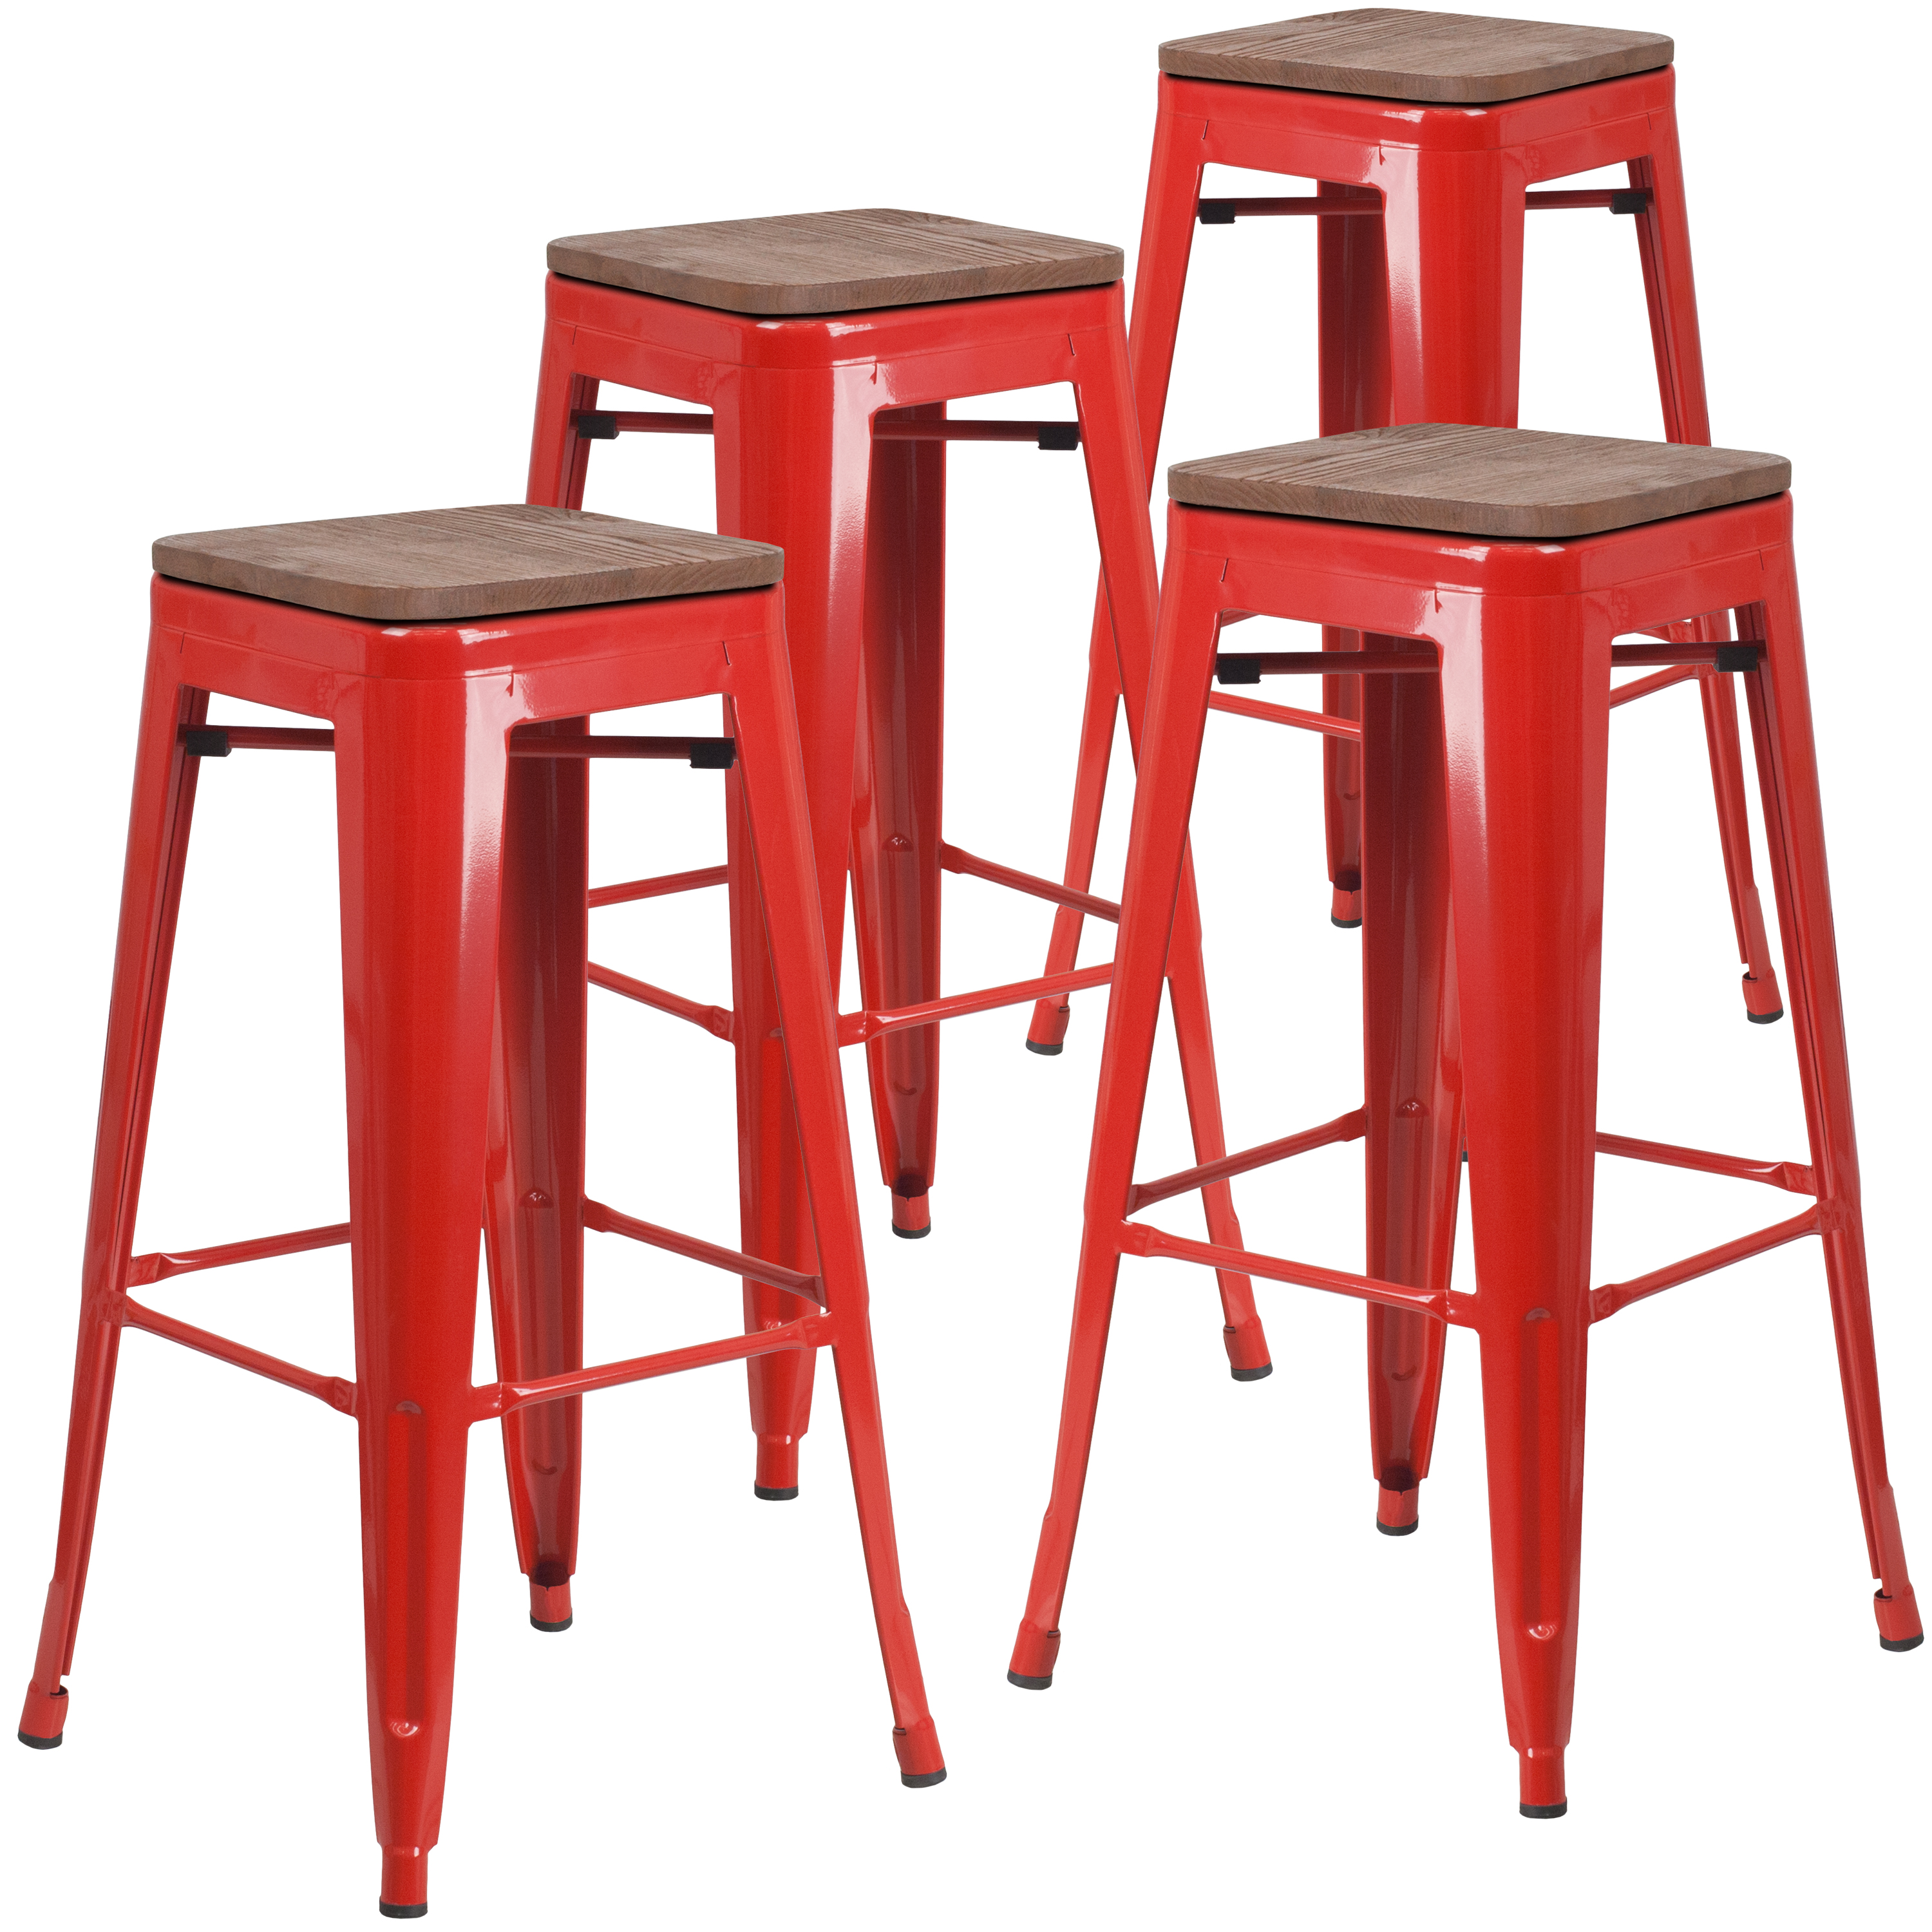 Flash furniture 4 pk 30 high backless orange metal barstool with square wood seat walmart com